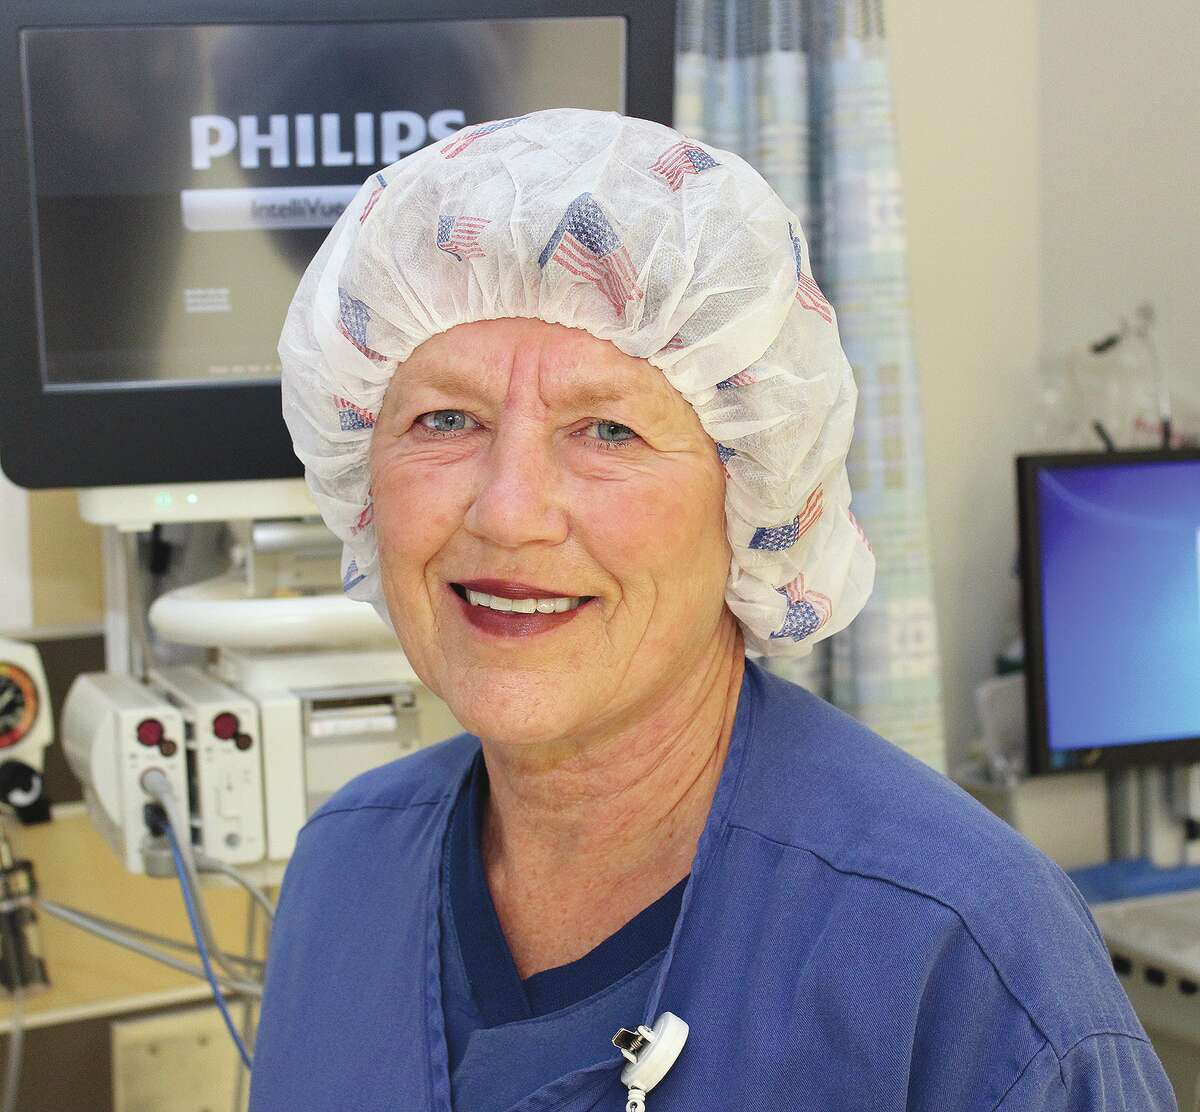 Patty Kircher of rural Chapin retired Aug. 27 following 51 years of service at Passavant Area Hospital as a registered nurse.